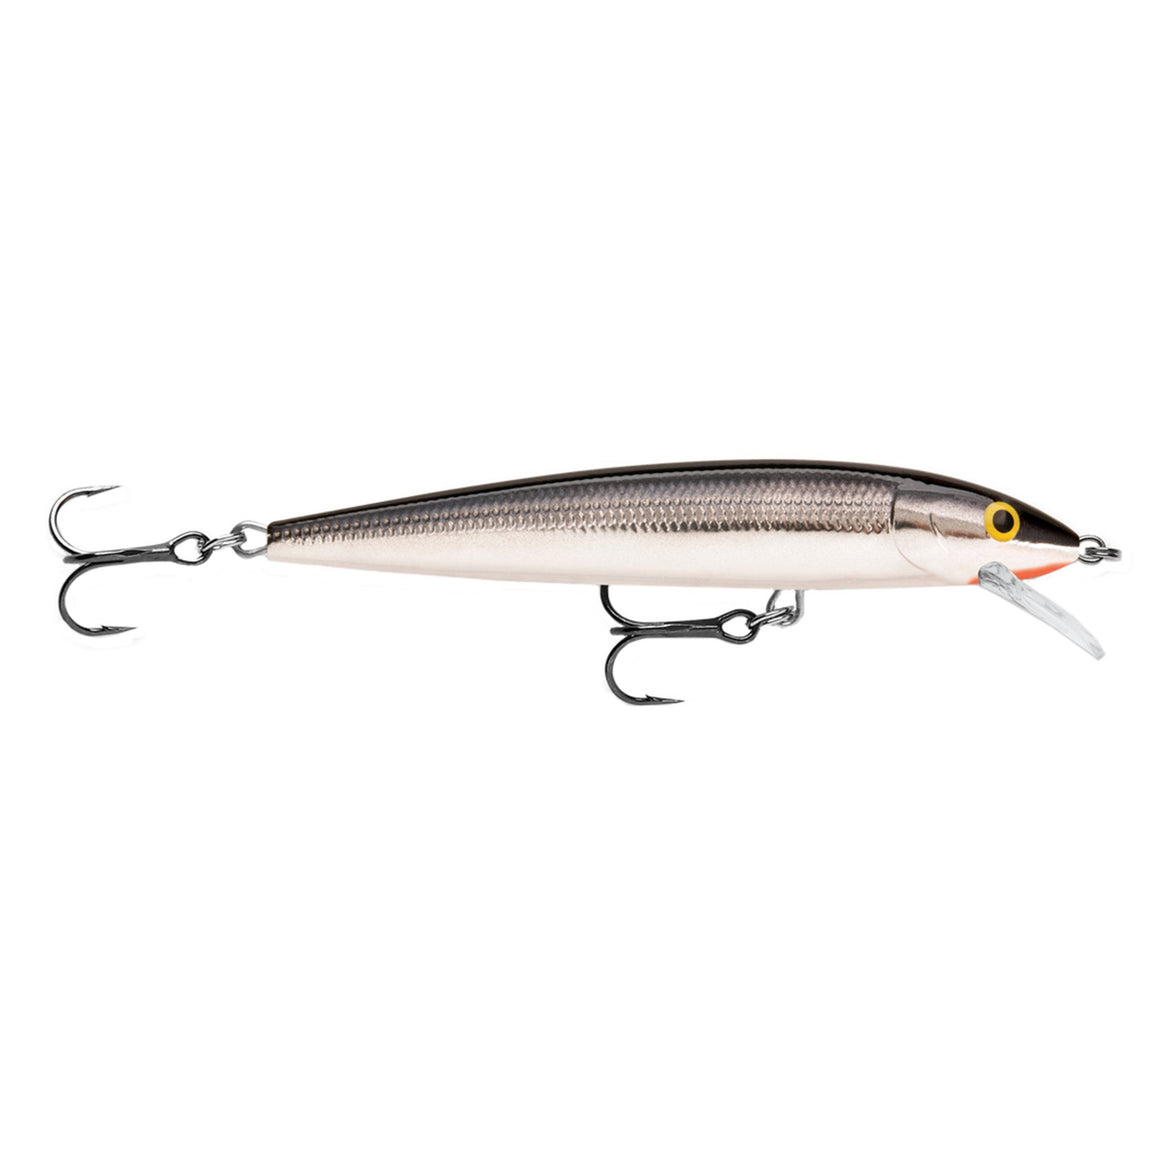 "Rapala Husky Jerk Lure Size 10, 4"" Length, 4'-6' Depth, 2 No 5 Treble Hooks, Silver"